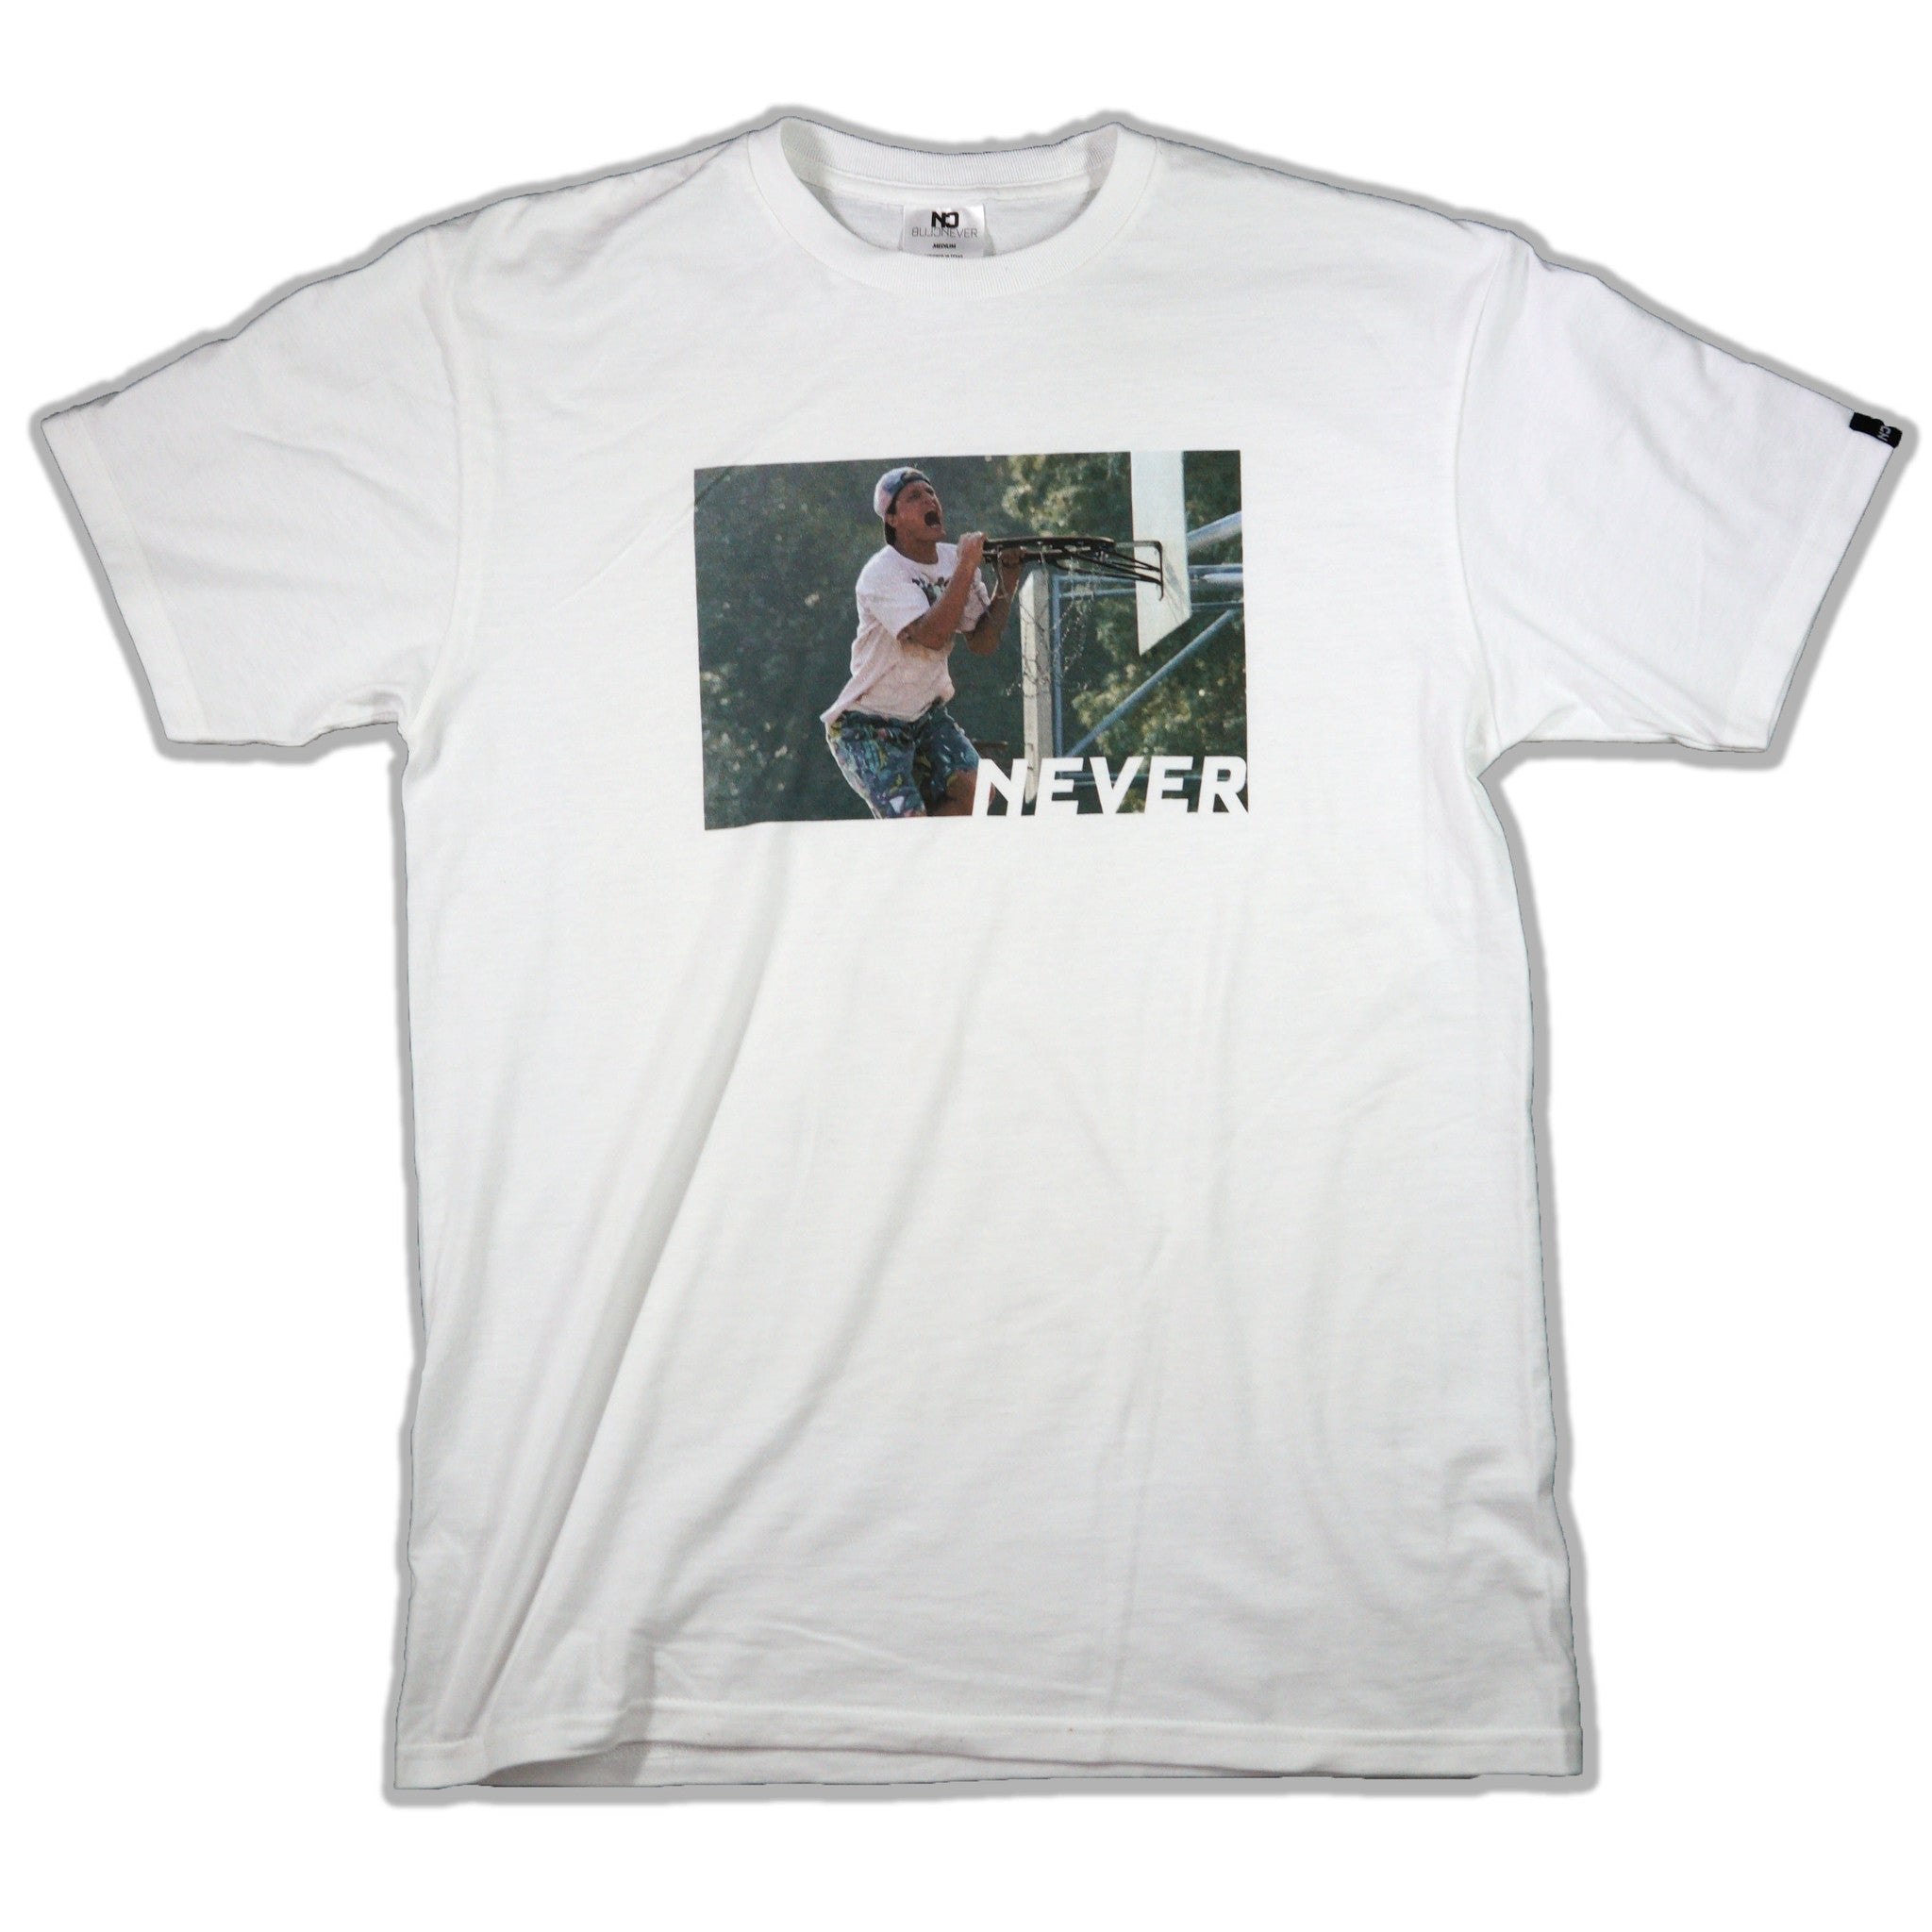 Never Can't Jump Tee - White